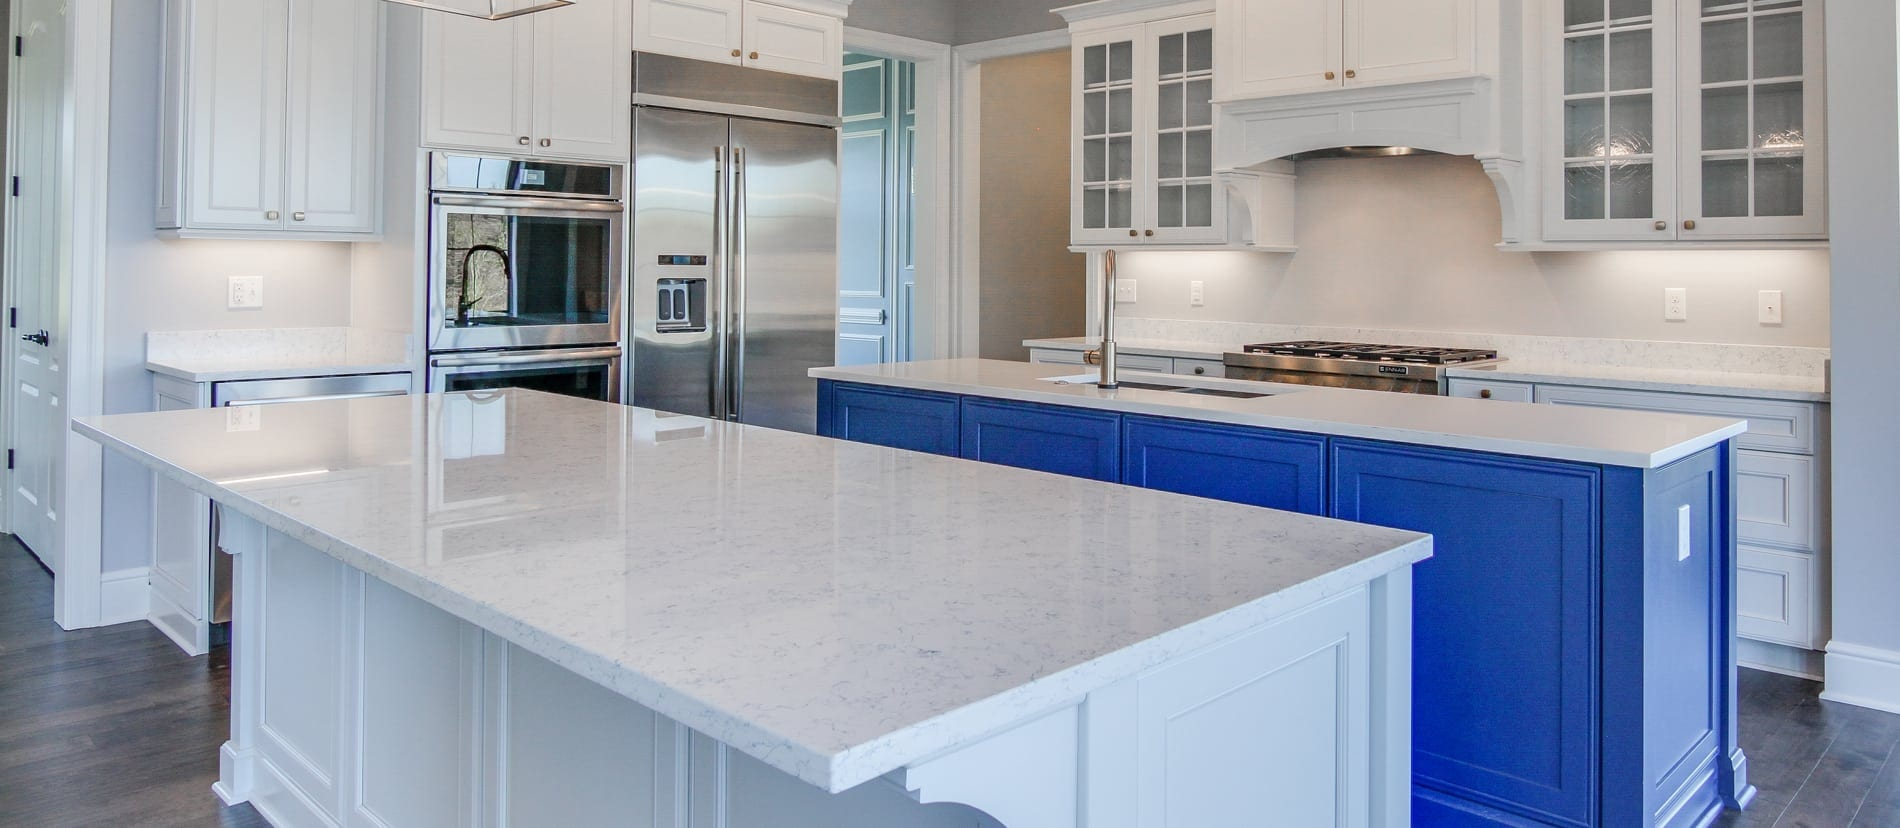 Choice Granite & Marble Pittsburgh Granite Marble Quartz & More on soapstone suppliers in pa, soapstone countertops lancaster pa, soapstone slabs,